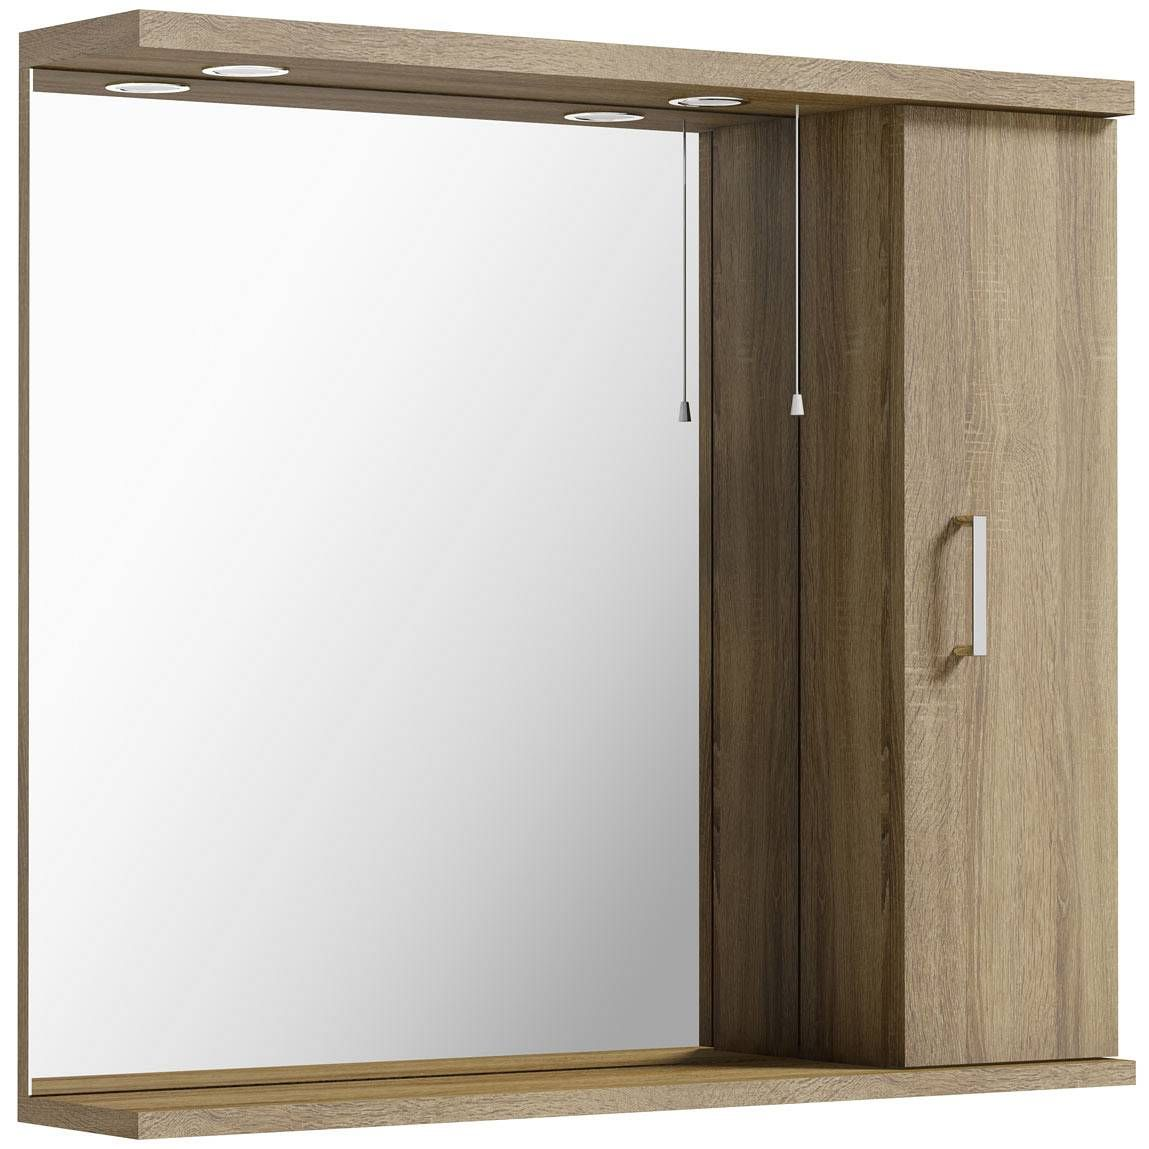 Sienna Oak 85 Mirror with lights | Bathroom | Pinterest | Bathroom ...